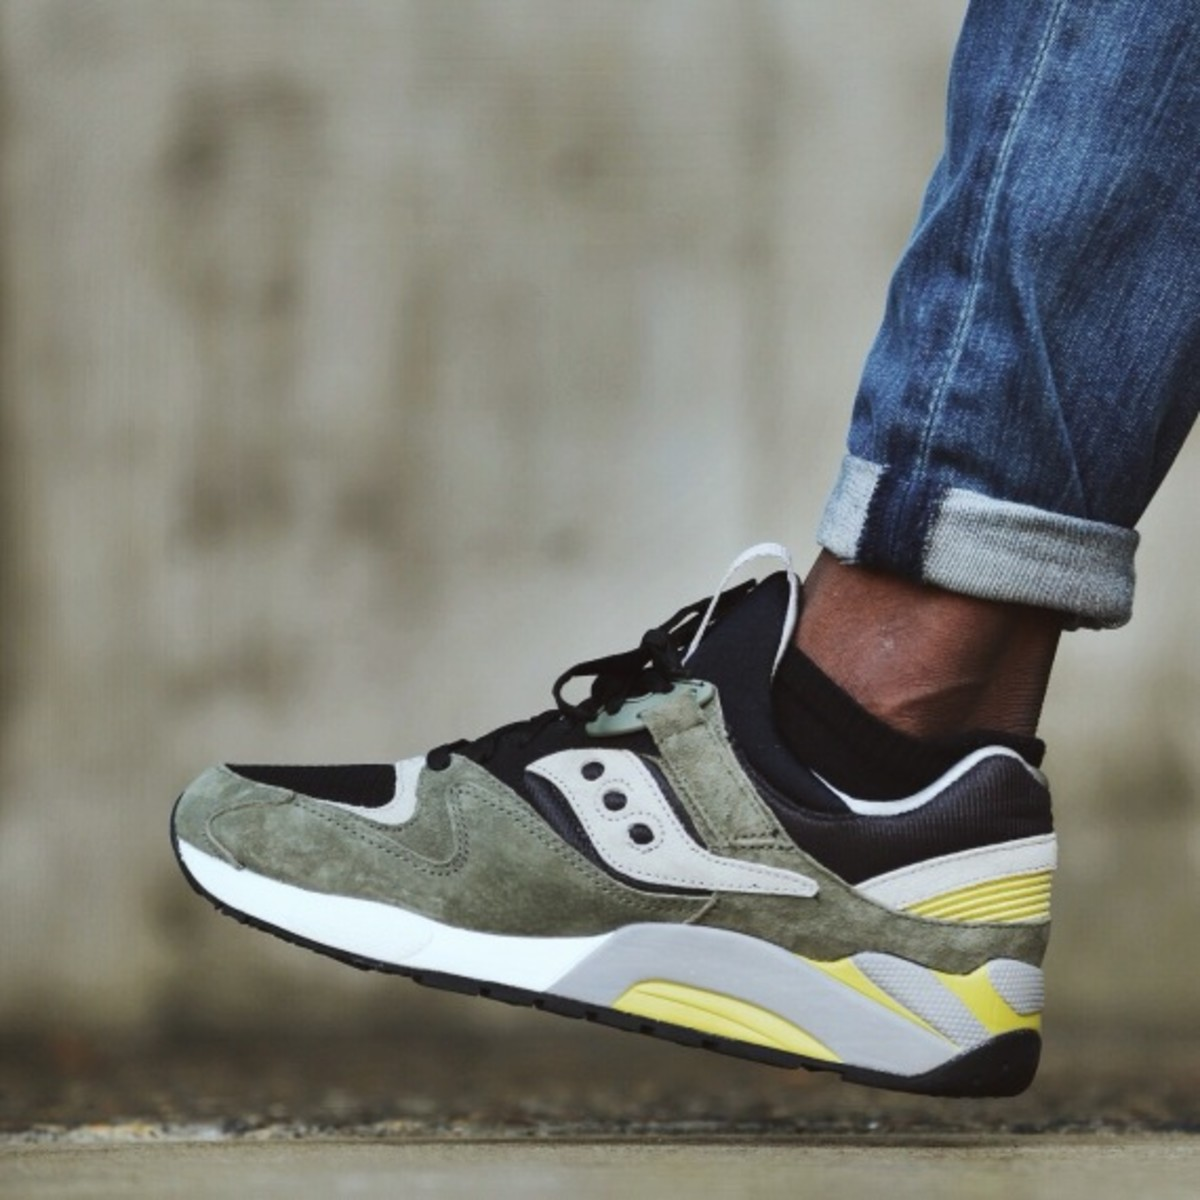 saucony-grid-9000-spice-pack-04